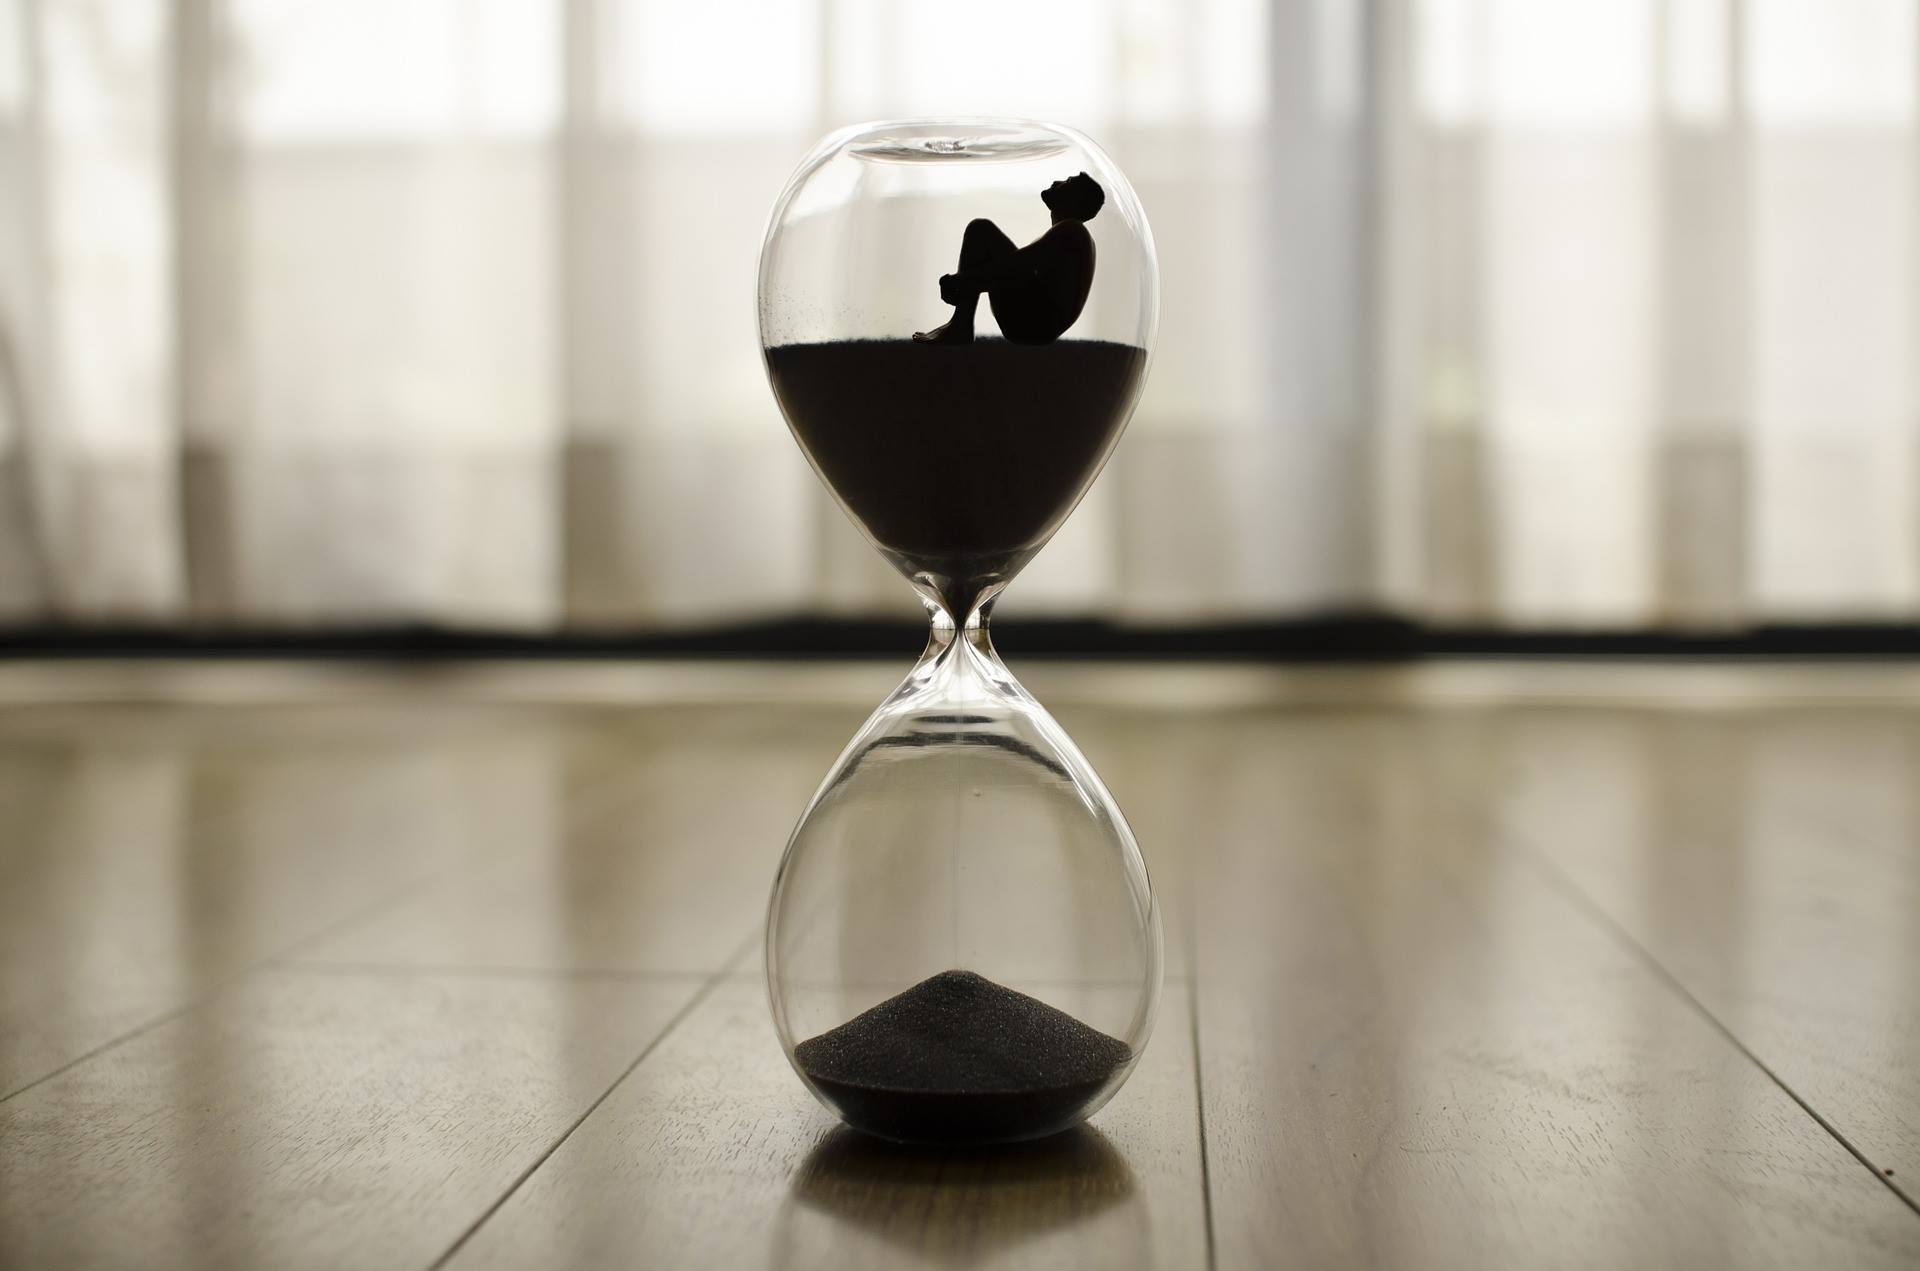 hourglass-life-goes-too-fast